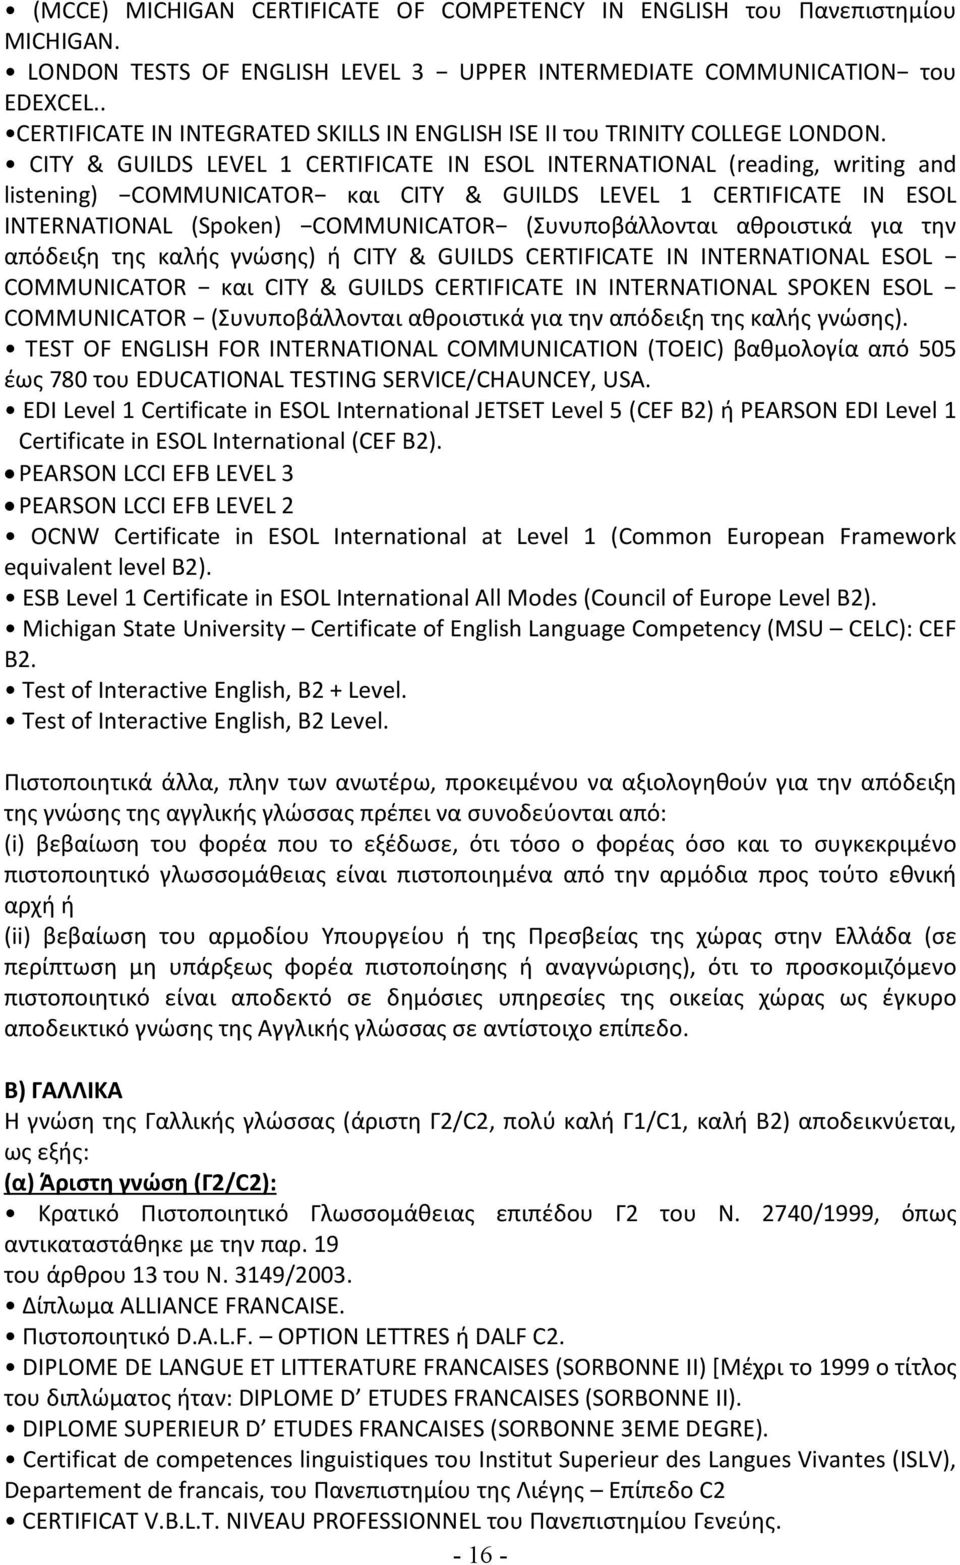 CITY & GUILDS LEVEL 1 CERTIFICATE IN ESOL INTERNATIONAL (reading, writing and listening) COMMUNICATOR και CITY & GUILDS LEVEL 1 CERTIFICATE IN ESOL INTERNATIONAL (Spoken) COMMUNICATOR